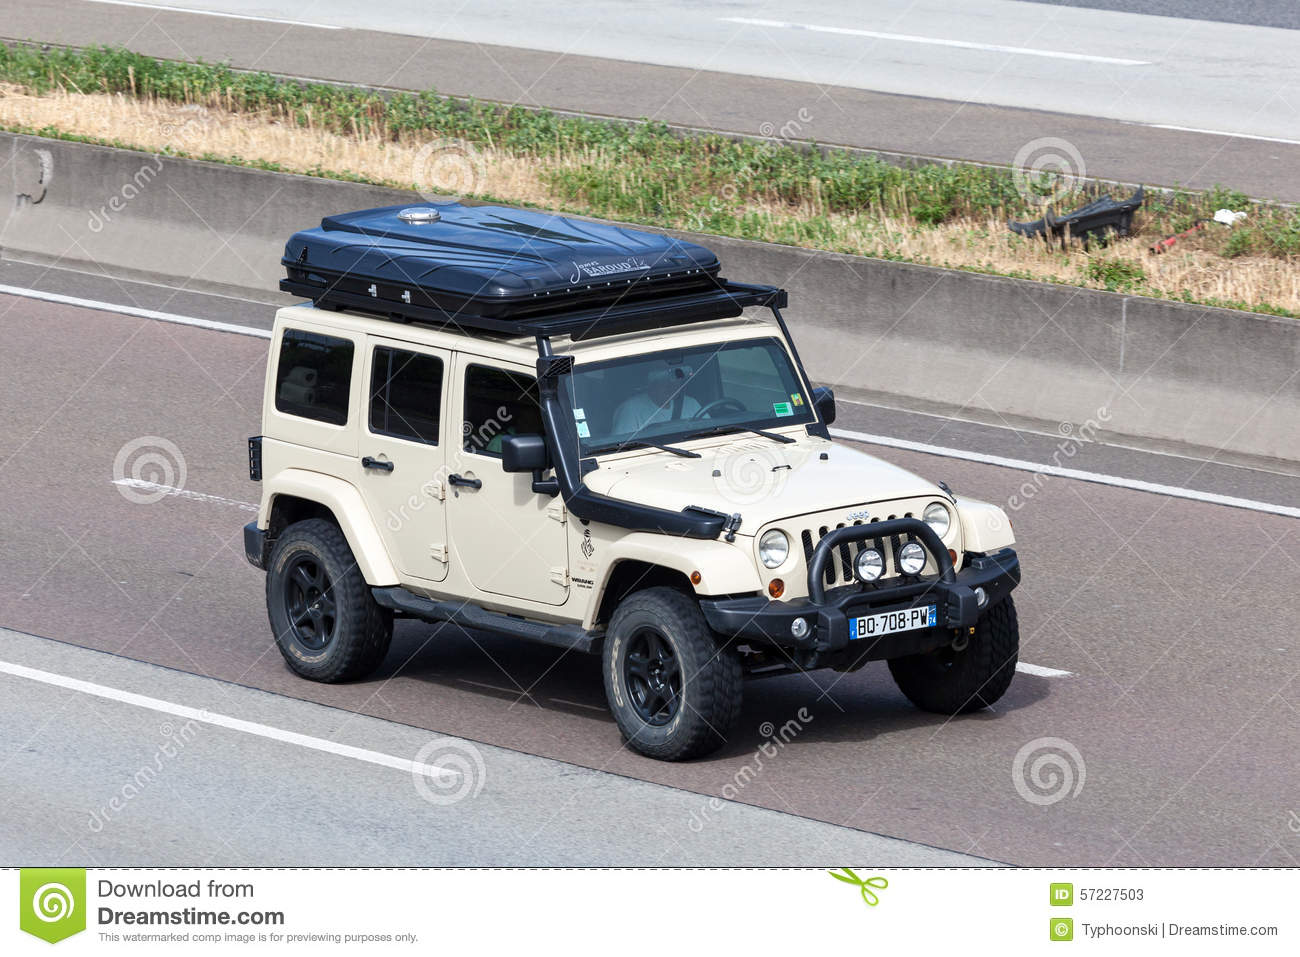 box germany highway jeep roof sahara tent ... & Jeep Wrangler Unlimited Sahara With A Roof Tent Editorial Stock ... memphite.com